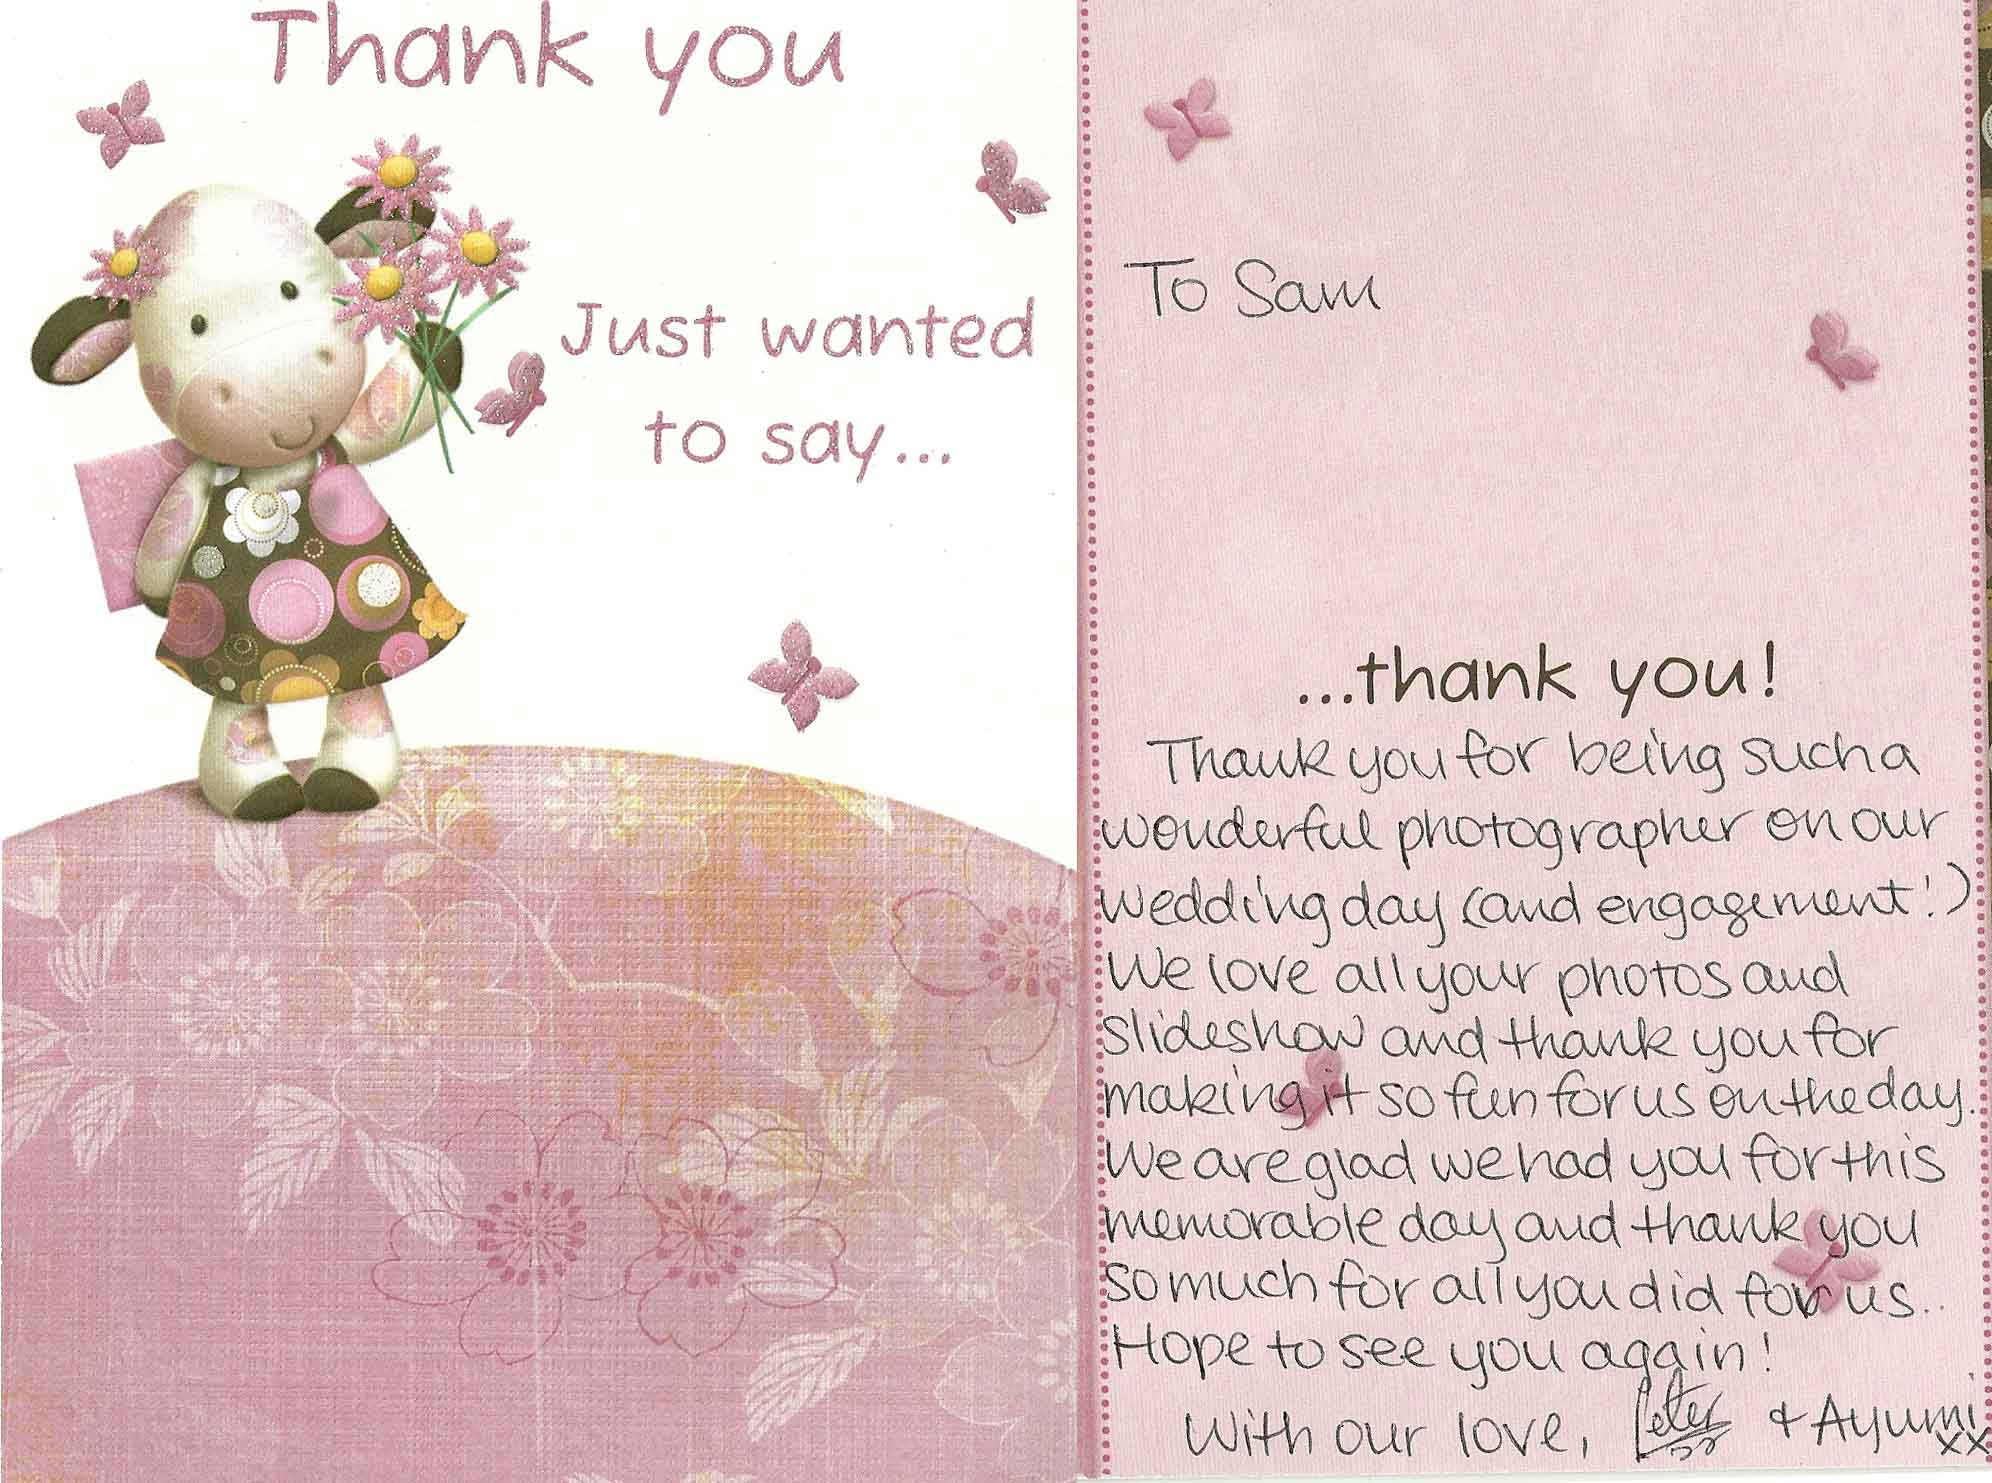 Such A Sweet Thank You Card From Ayumi And Peter Samantha Jones